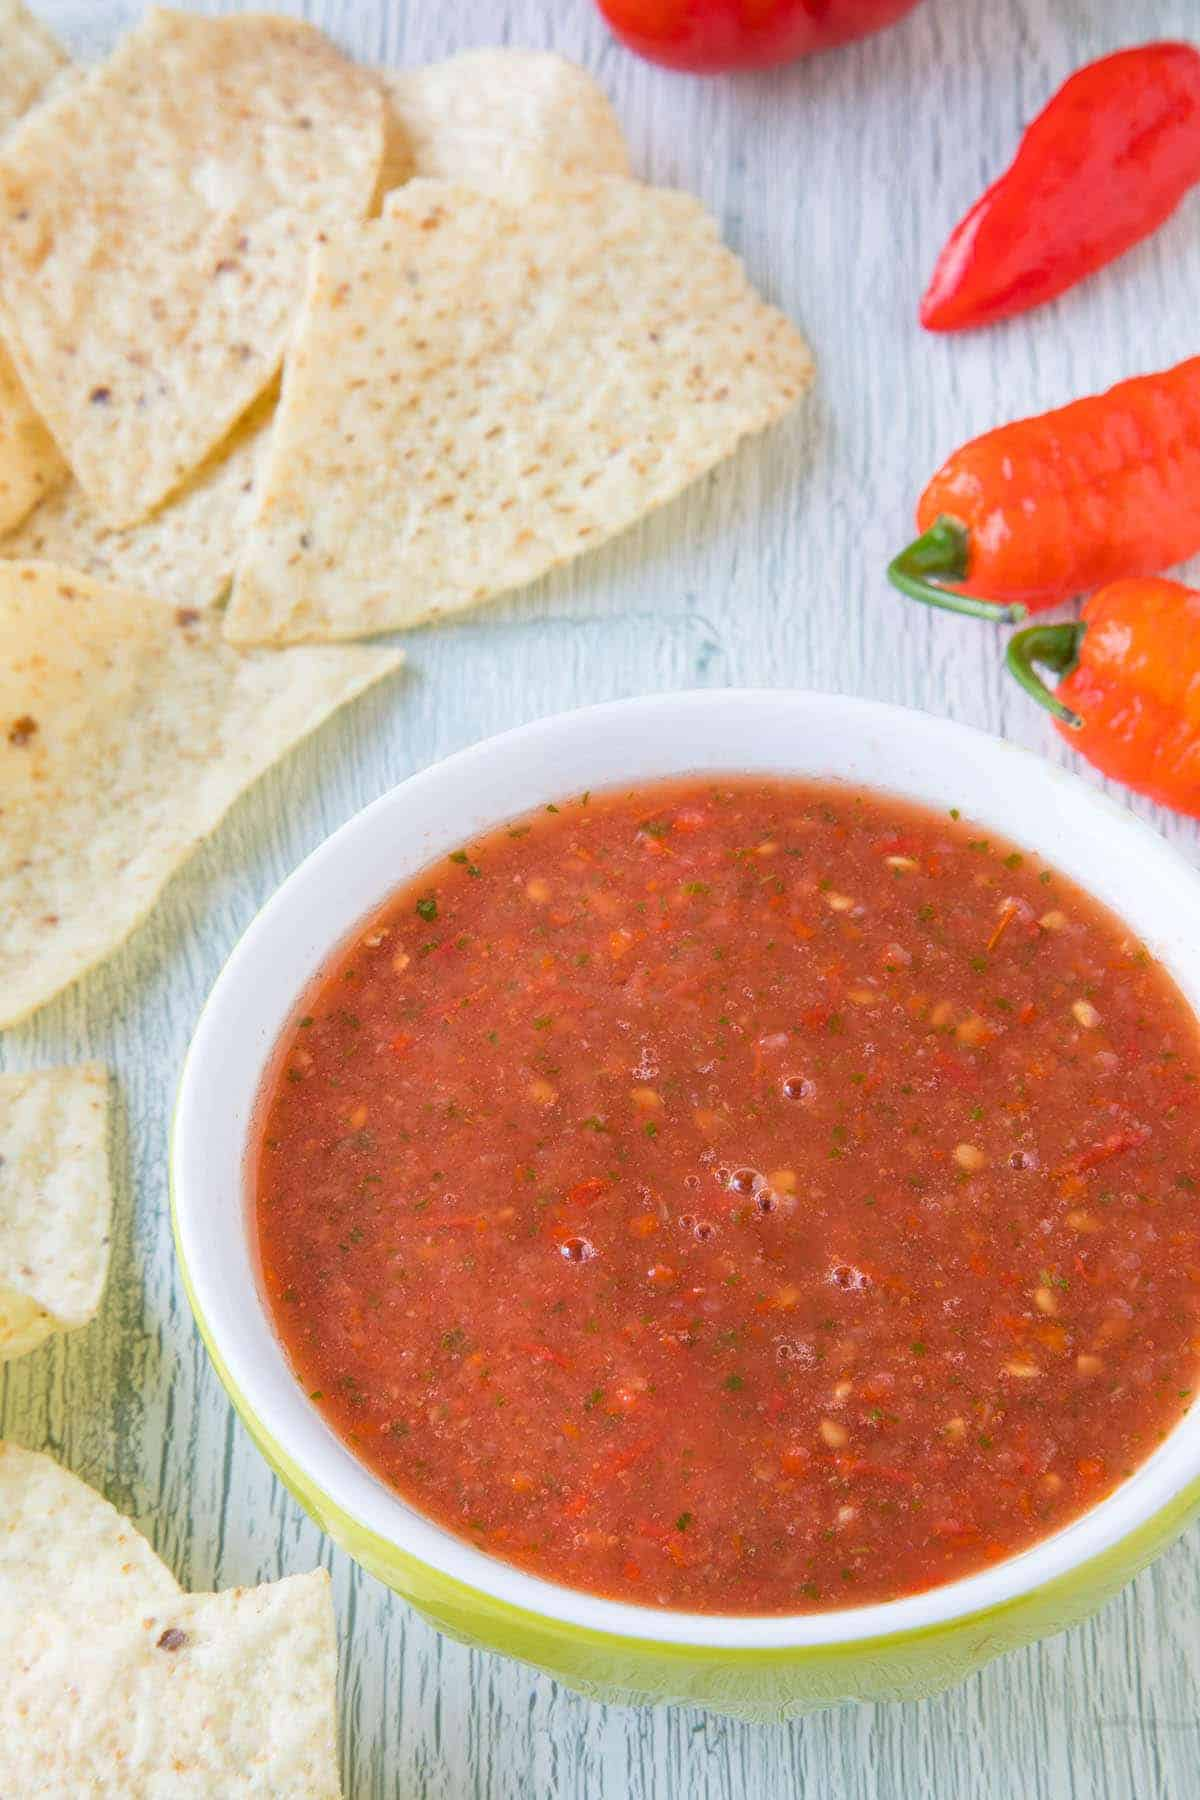 Ghost Pepper Salsa - Ready to Eat!